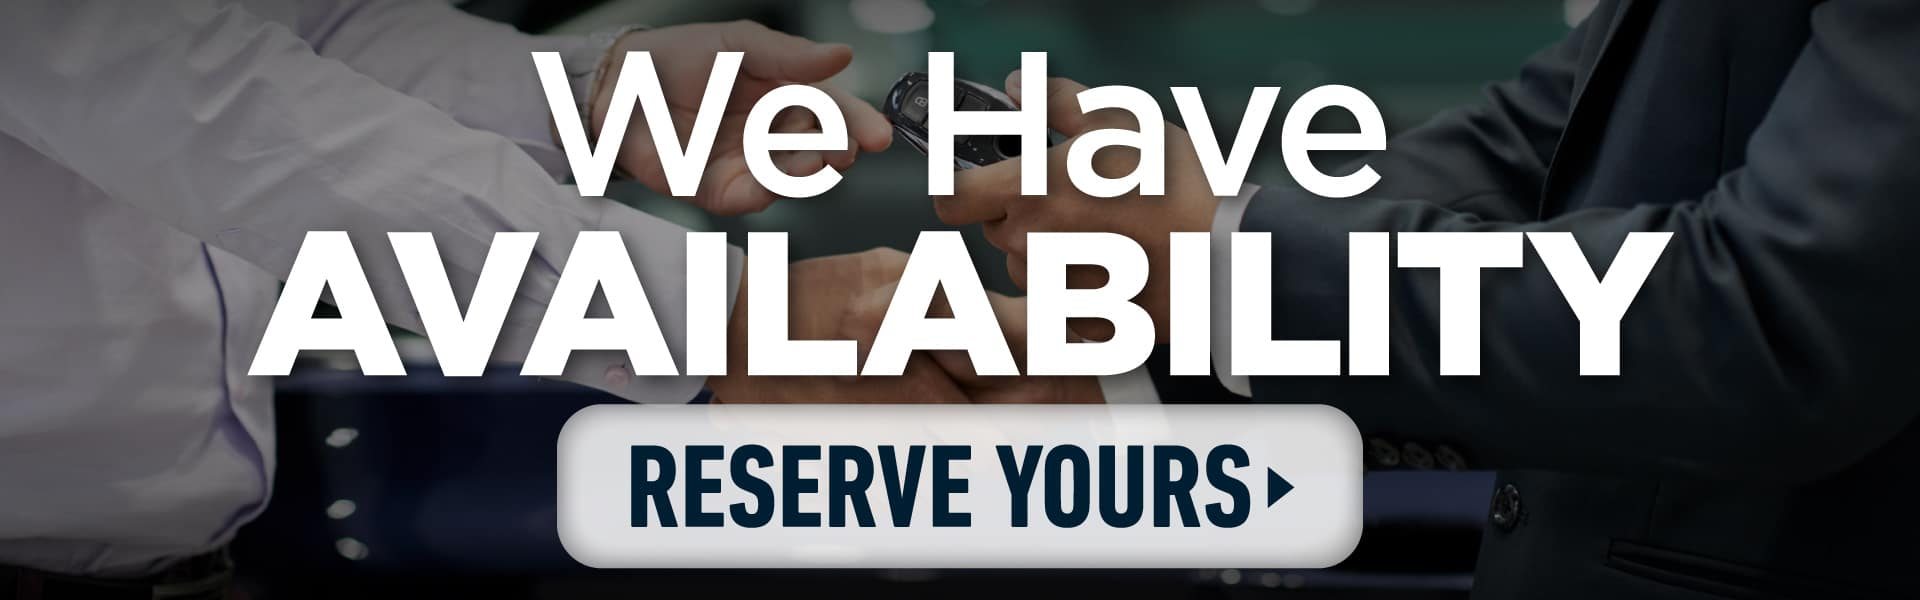 We have availability - Reserve Yours